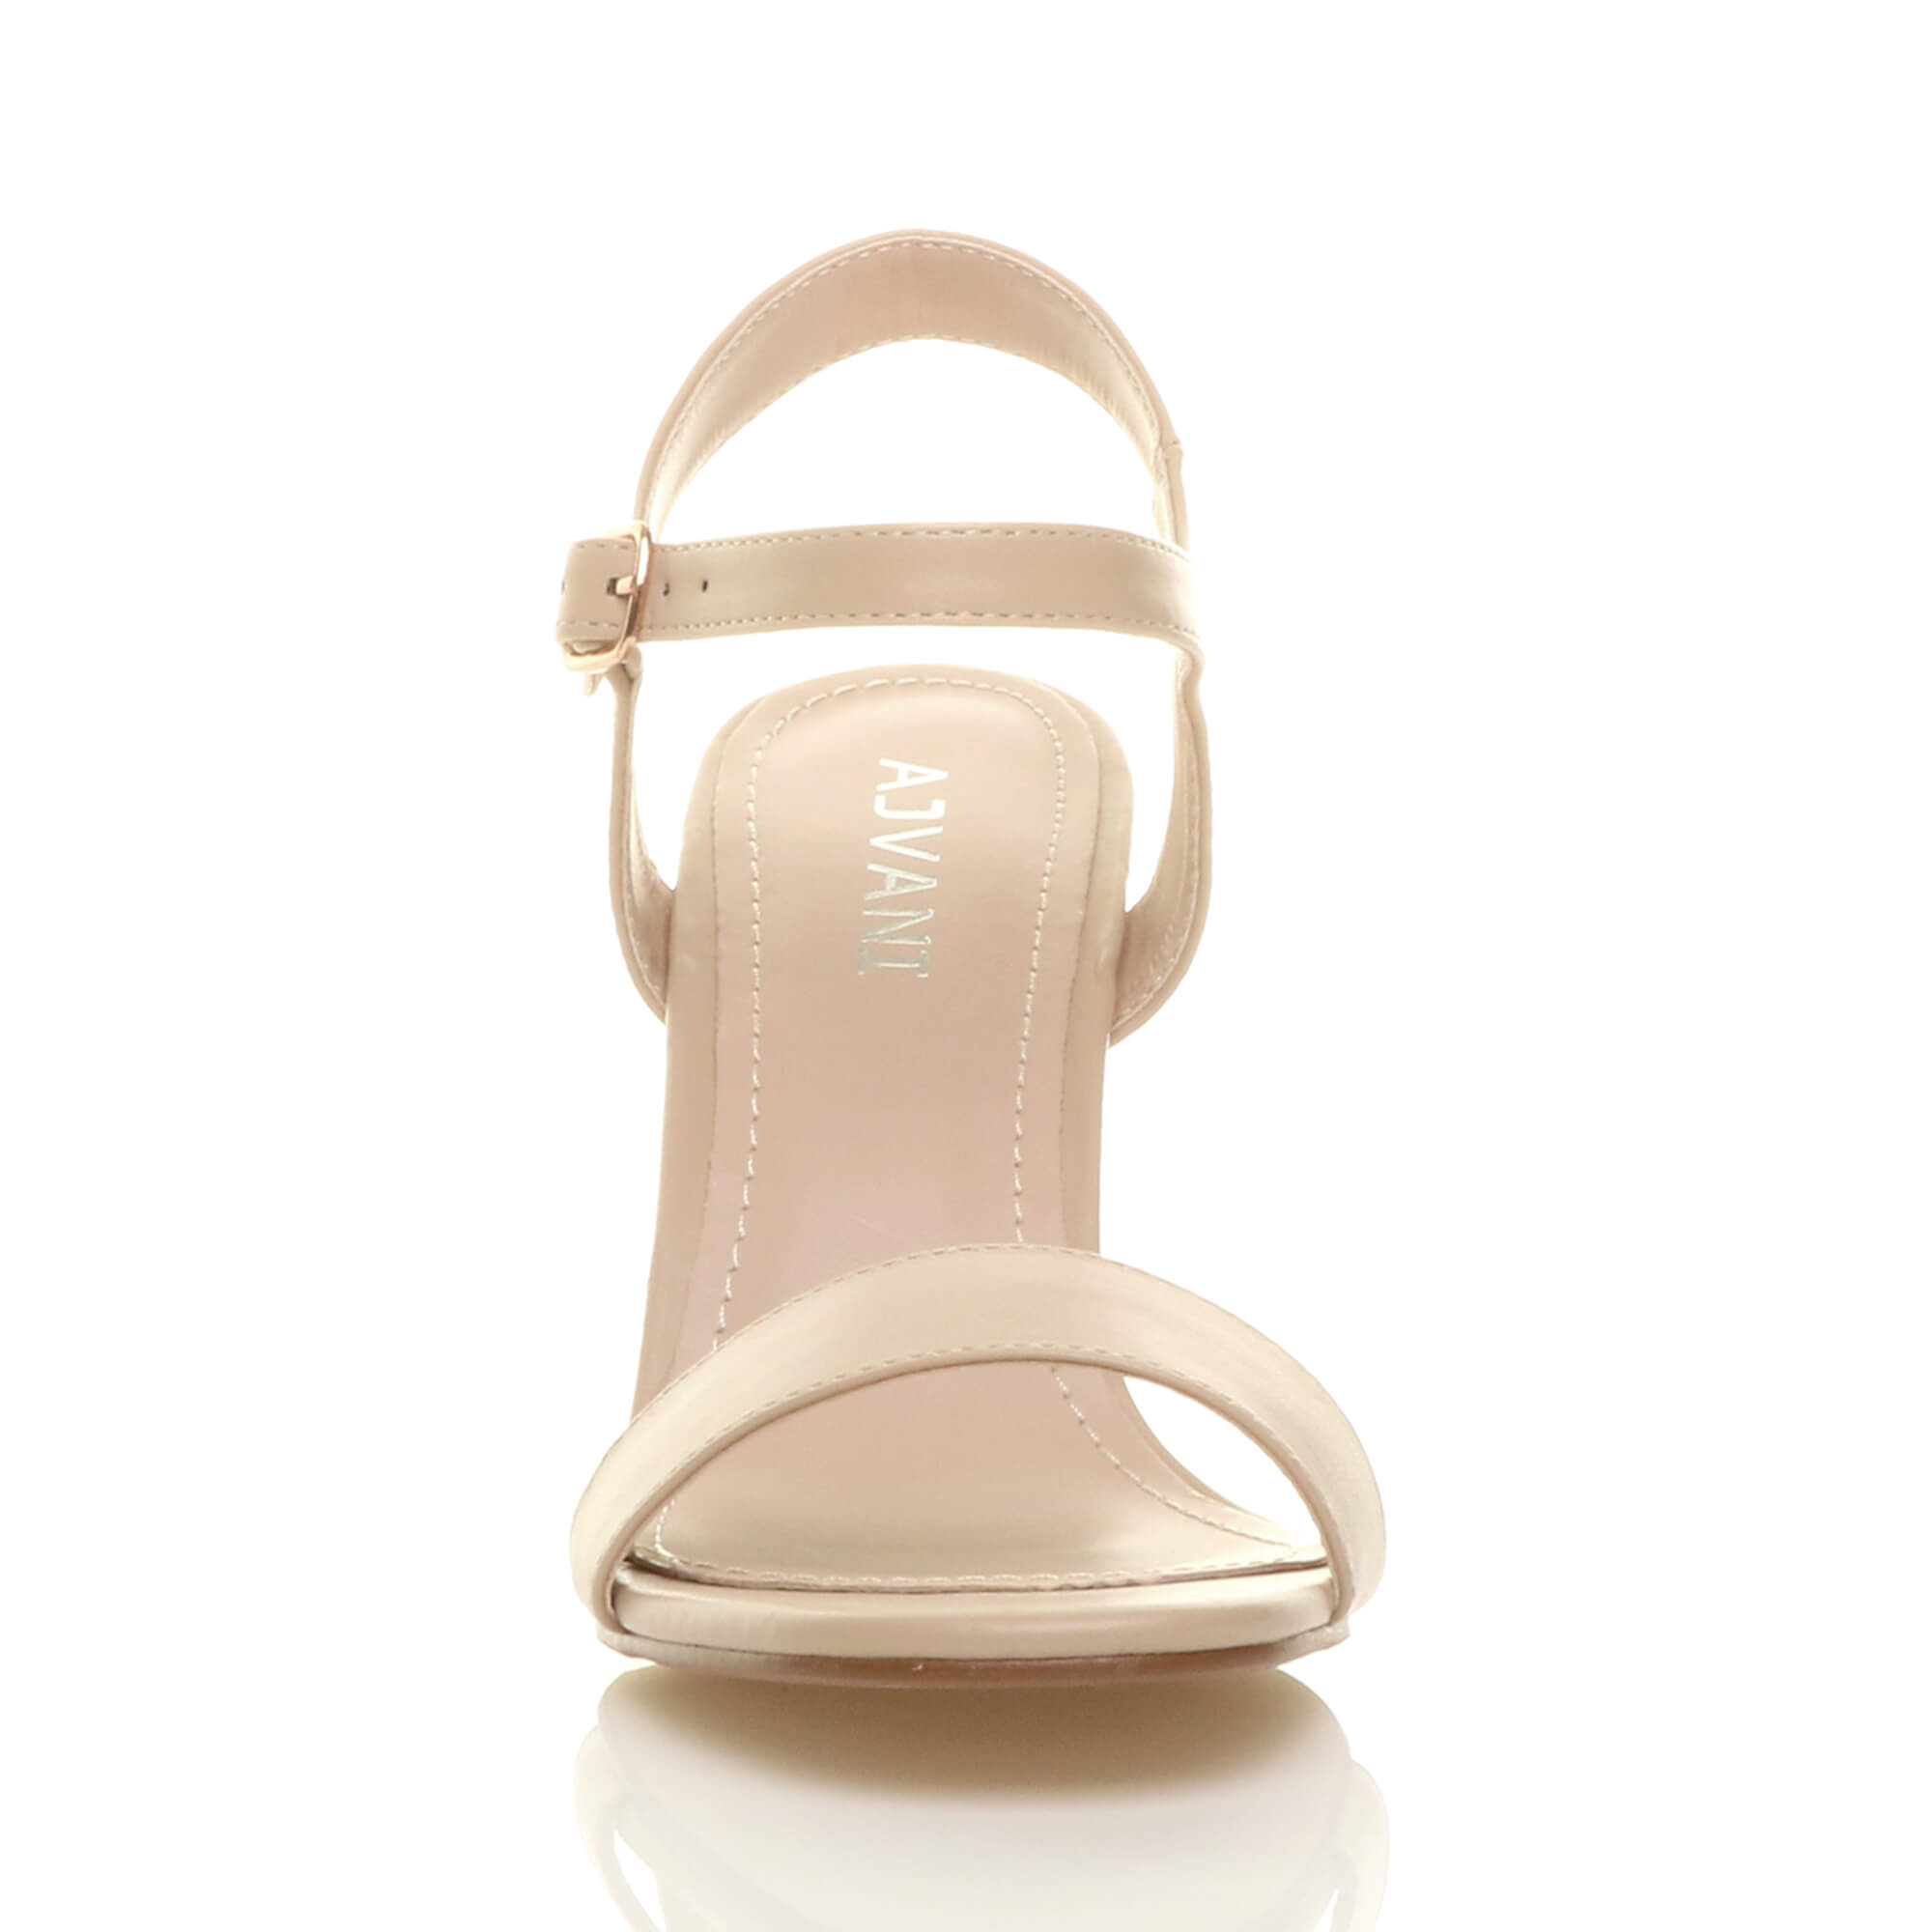 WOMENS-LADIES-HIGH-HEEL-BUCKLE-STRAPPY-BASIC-BARELY-THERE-SANDALS-SHOES-SIZE thumbnail 97